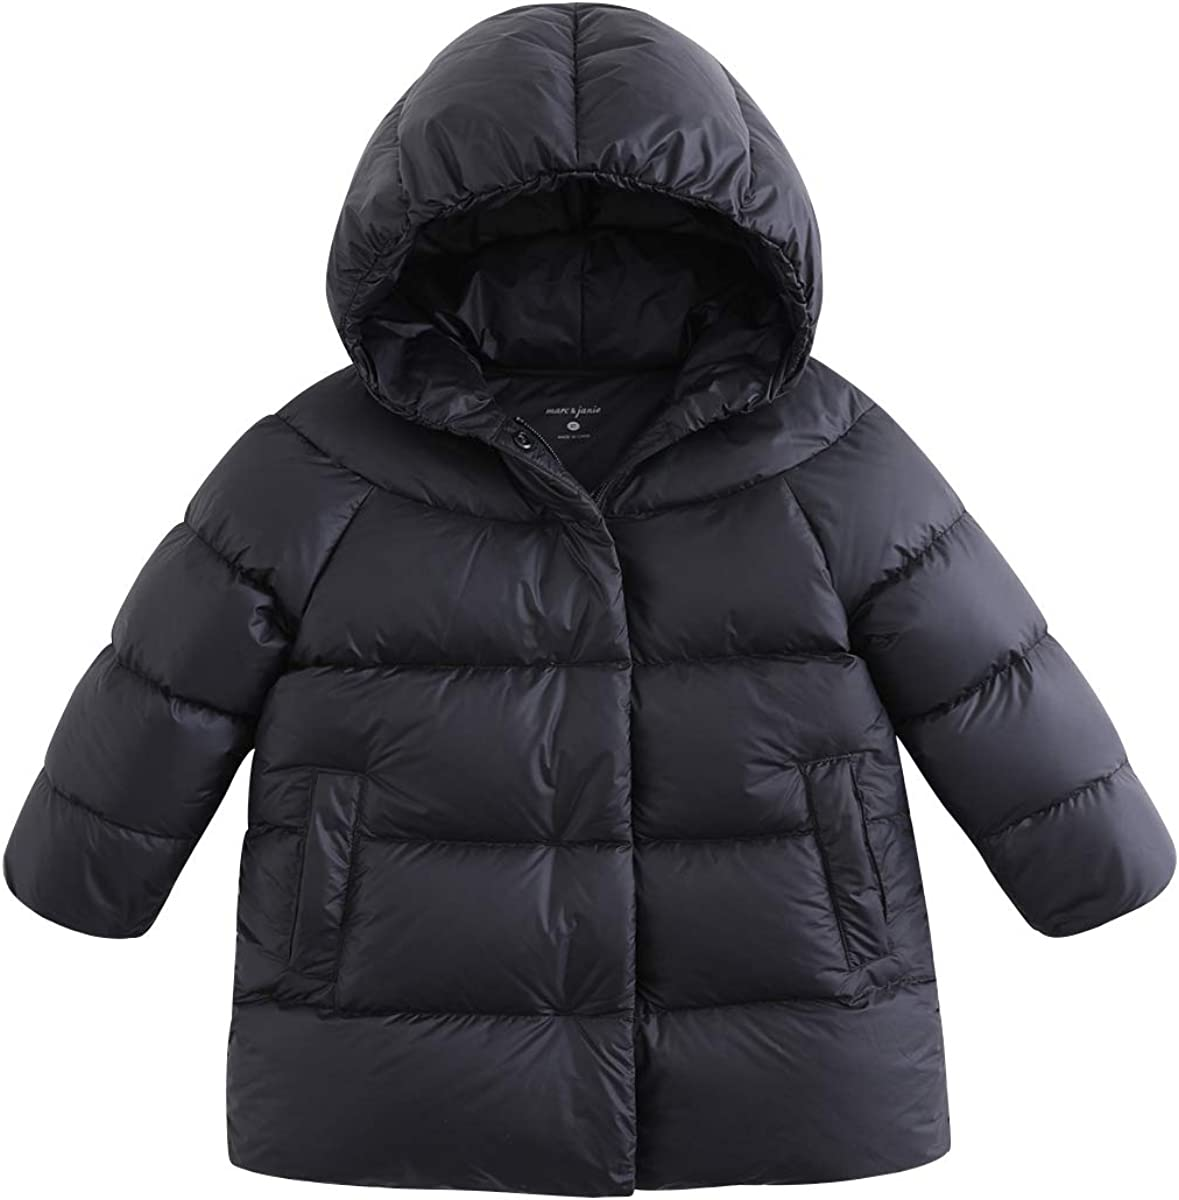 marc janie Girls' Thick Mid-length Light Weight Removable Hood Down Puffer Jacket Kids Outerwear